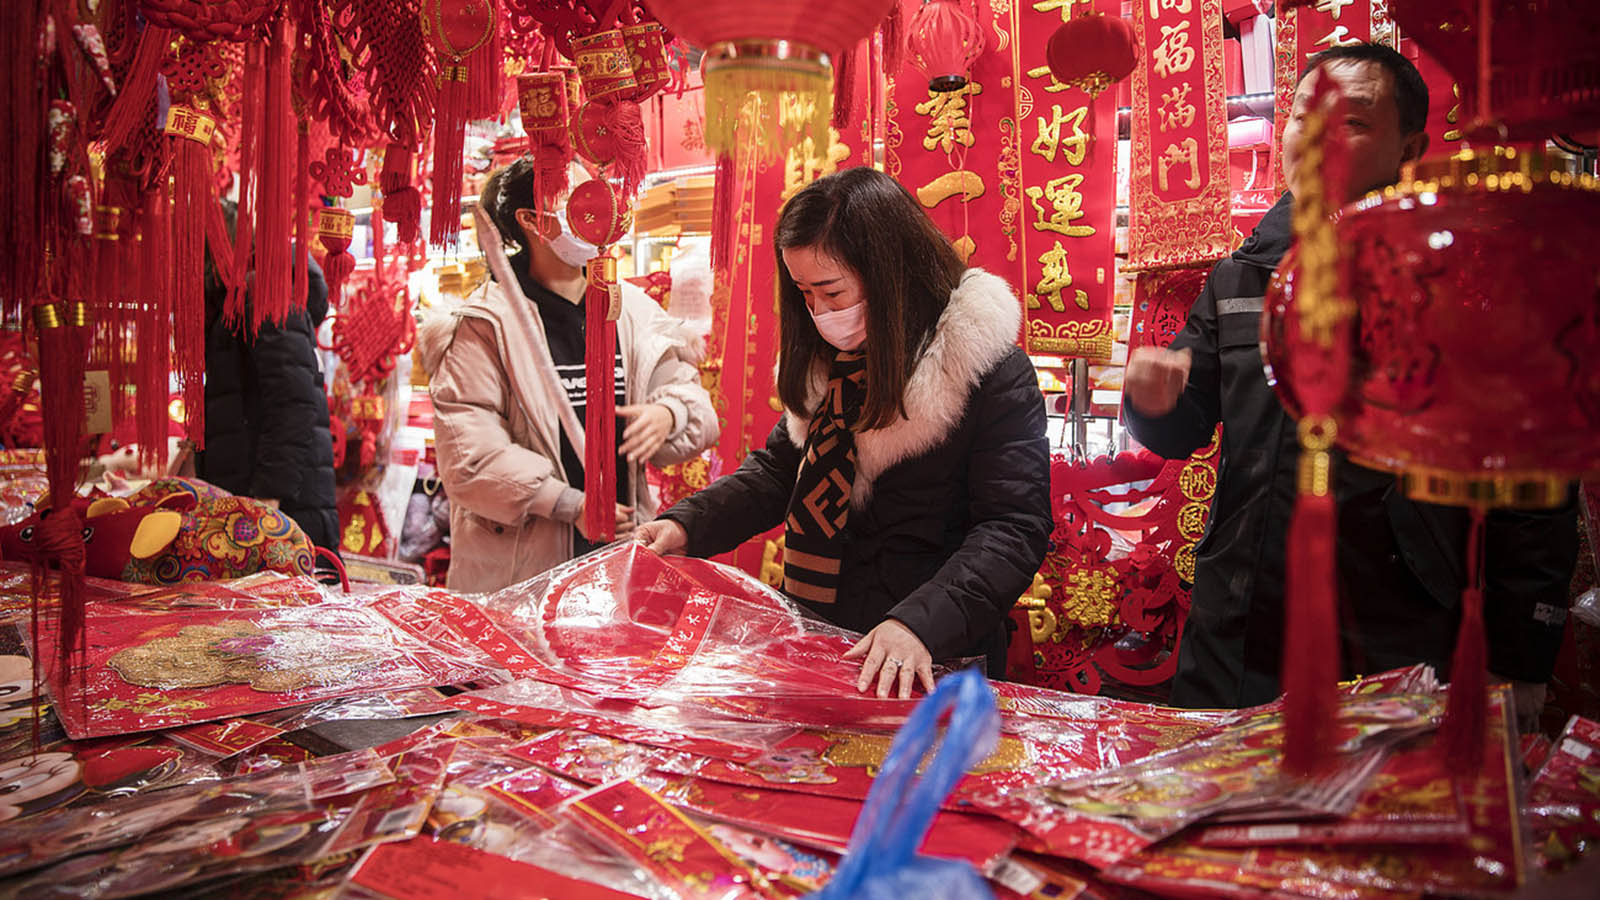 A woman shopped for New Year decorations in Shanghai ahead of the holiday. The escalation of the coronavirus coincides with Lunar New Year, China's biggest holiday. Major celebrations were canceled in several big Chinese cities, including Beijing and Wuhan.PHOTO: AFP